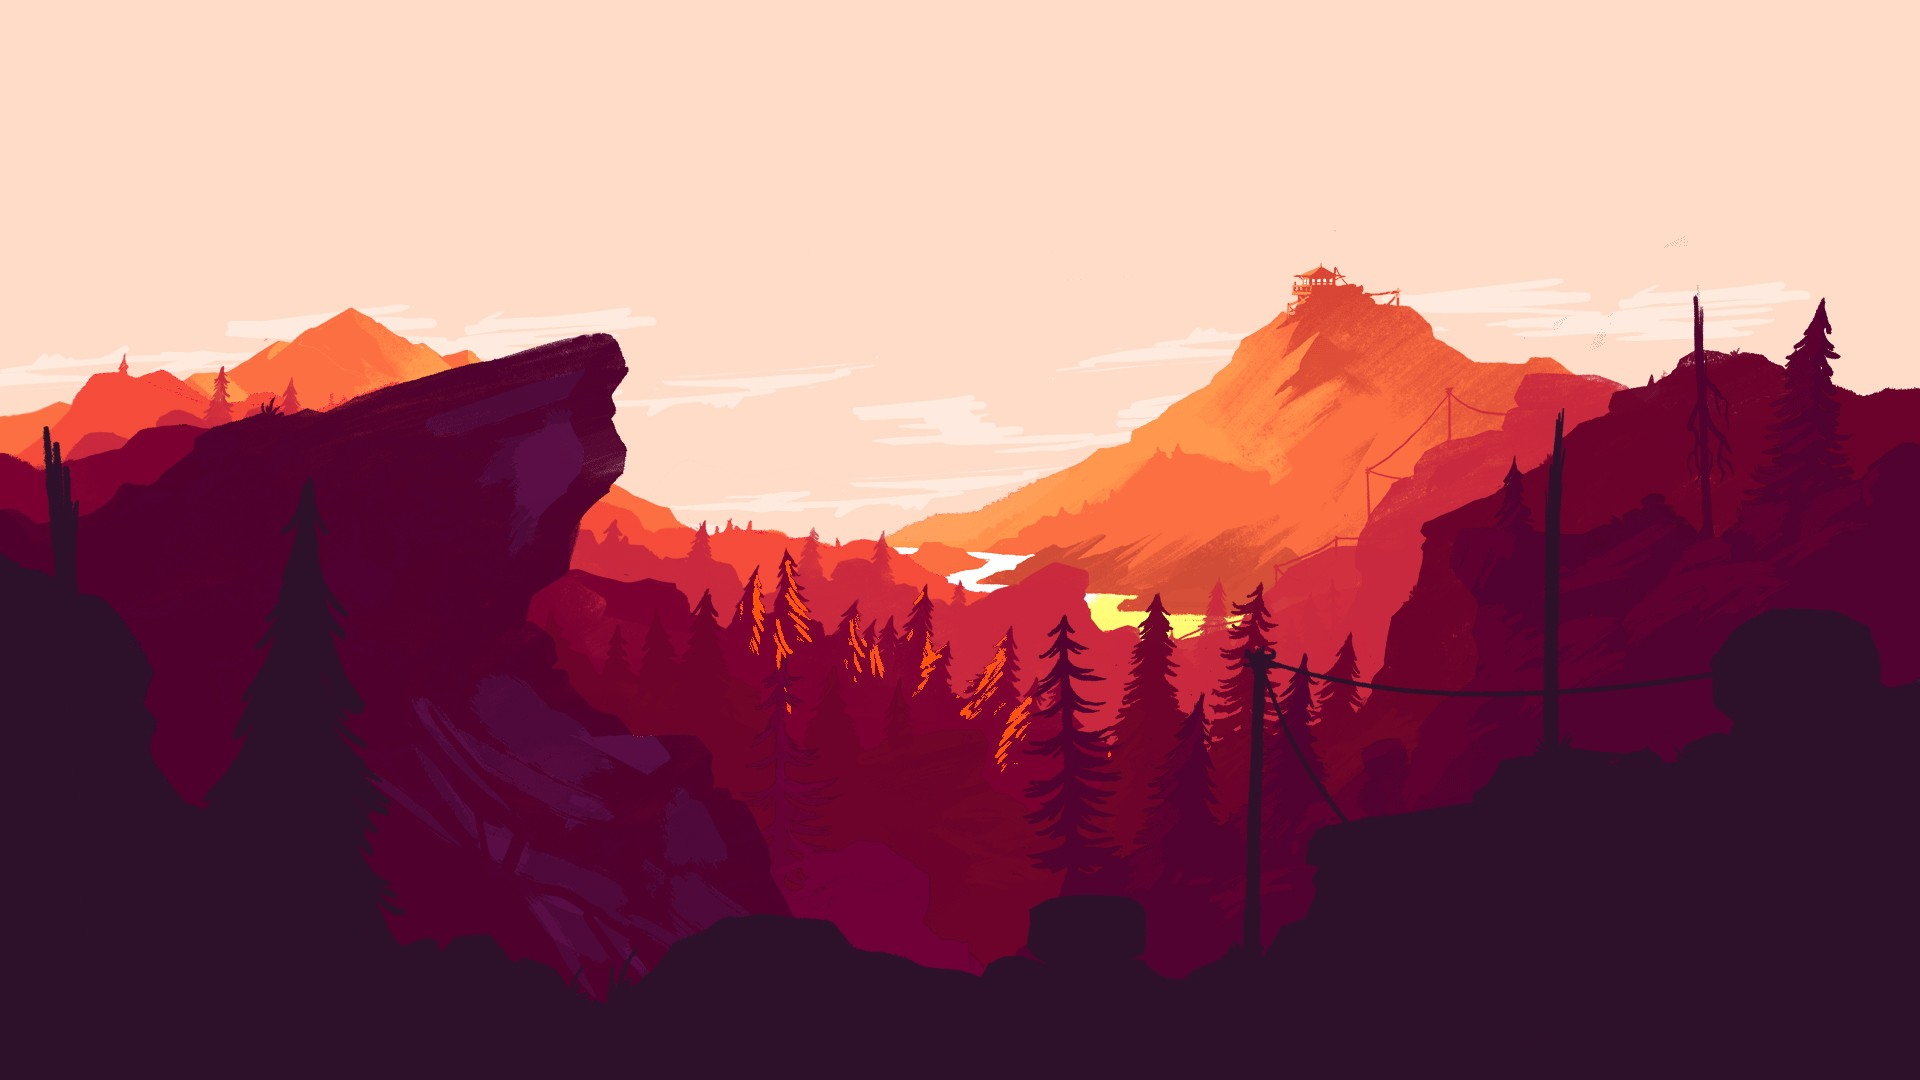 38 firewatch wallpapers download free beautiful high - Digital art wallpaper 3840x1080 ...